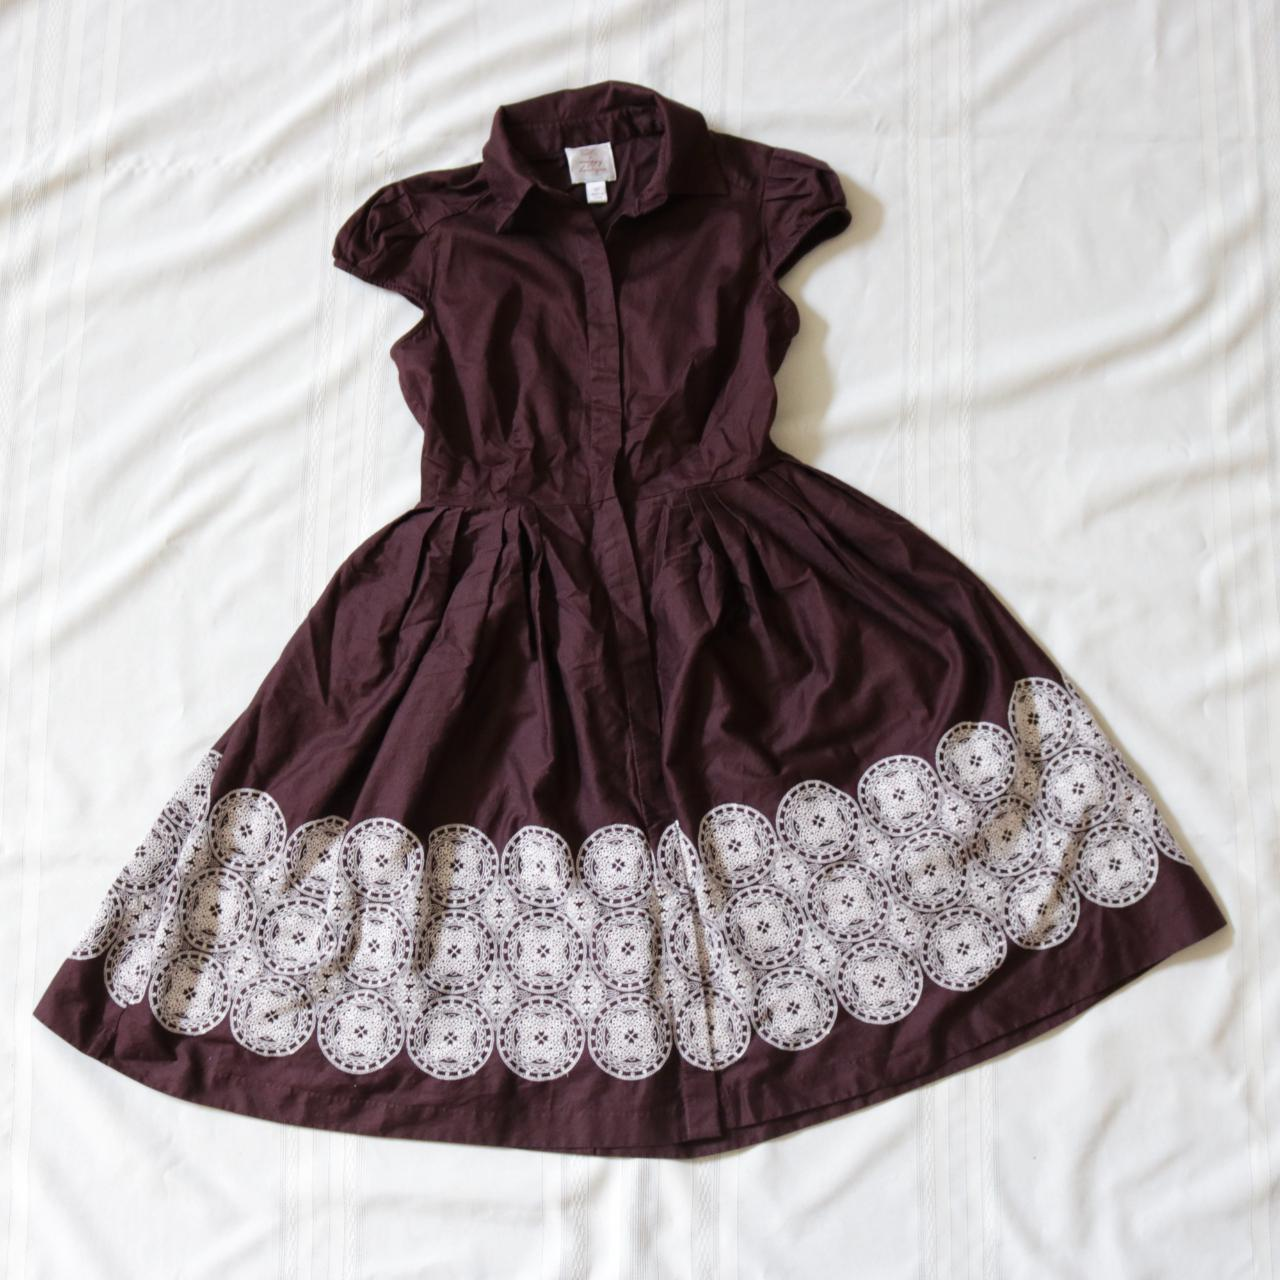 Product Image 1 - Brown embroidered shirt dress. The